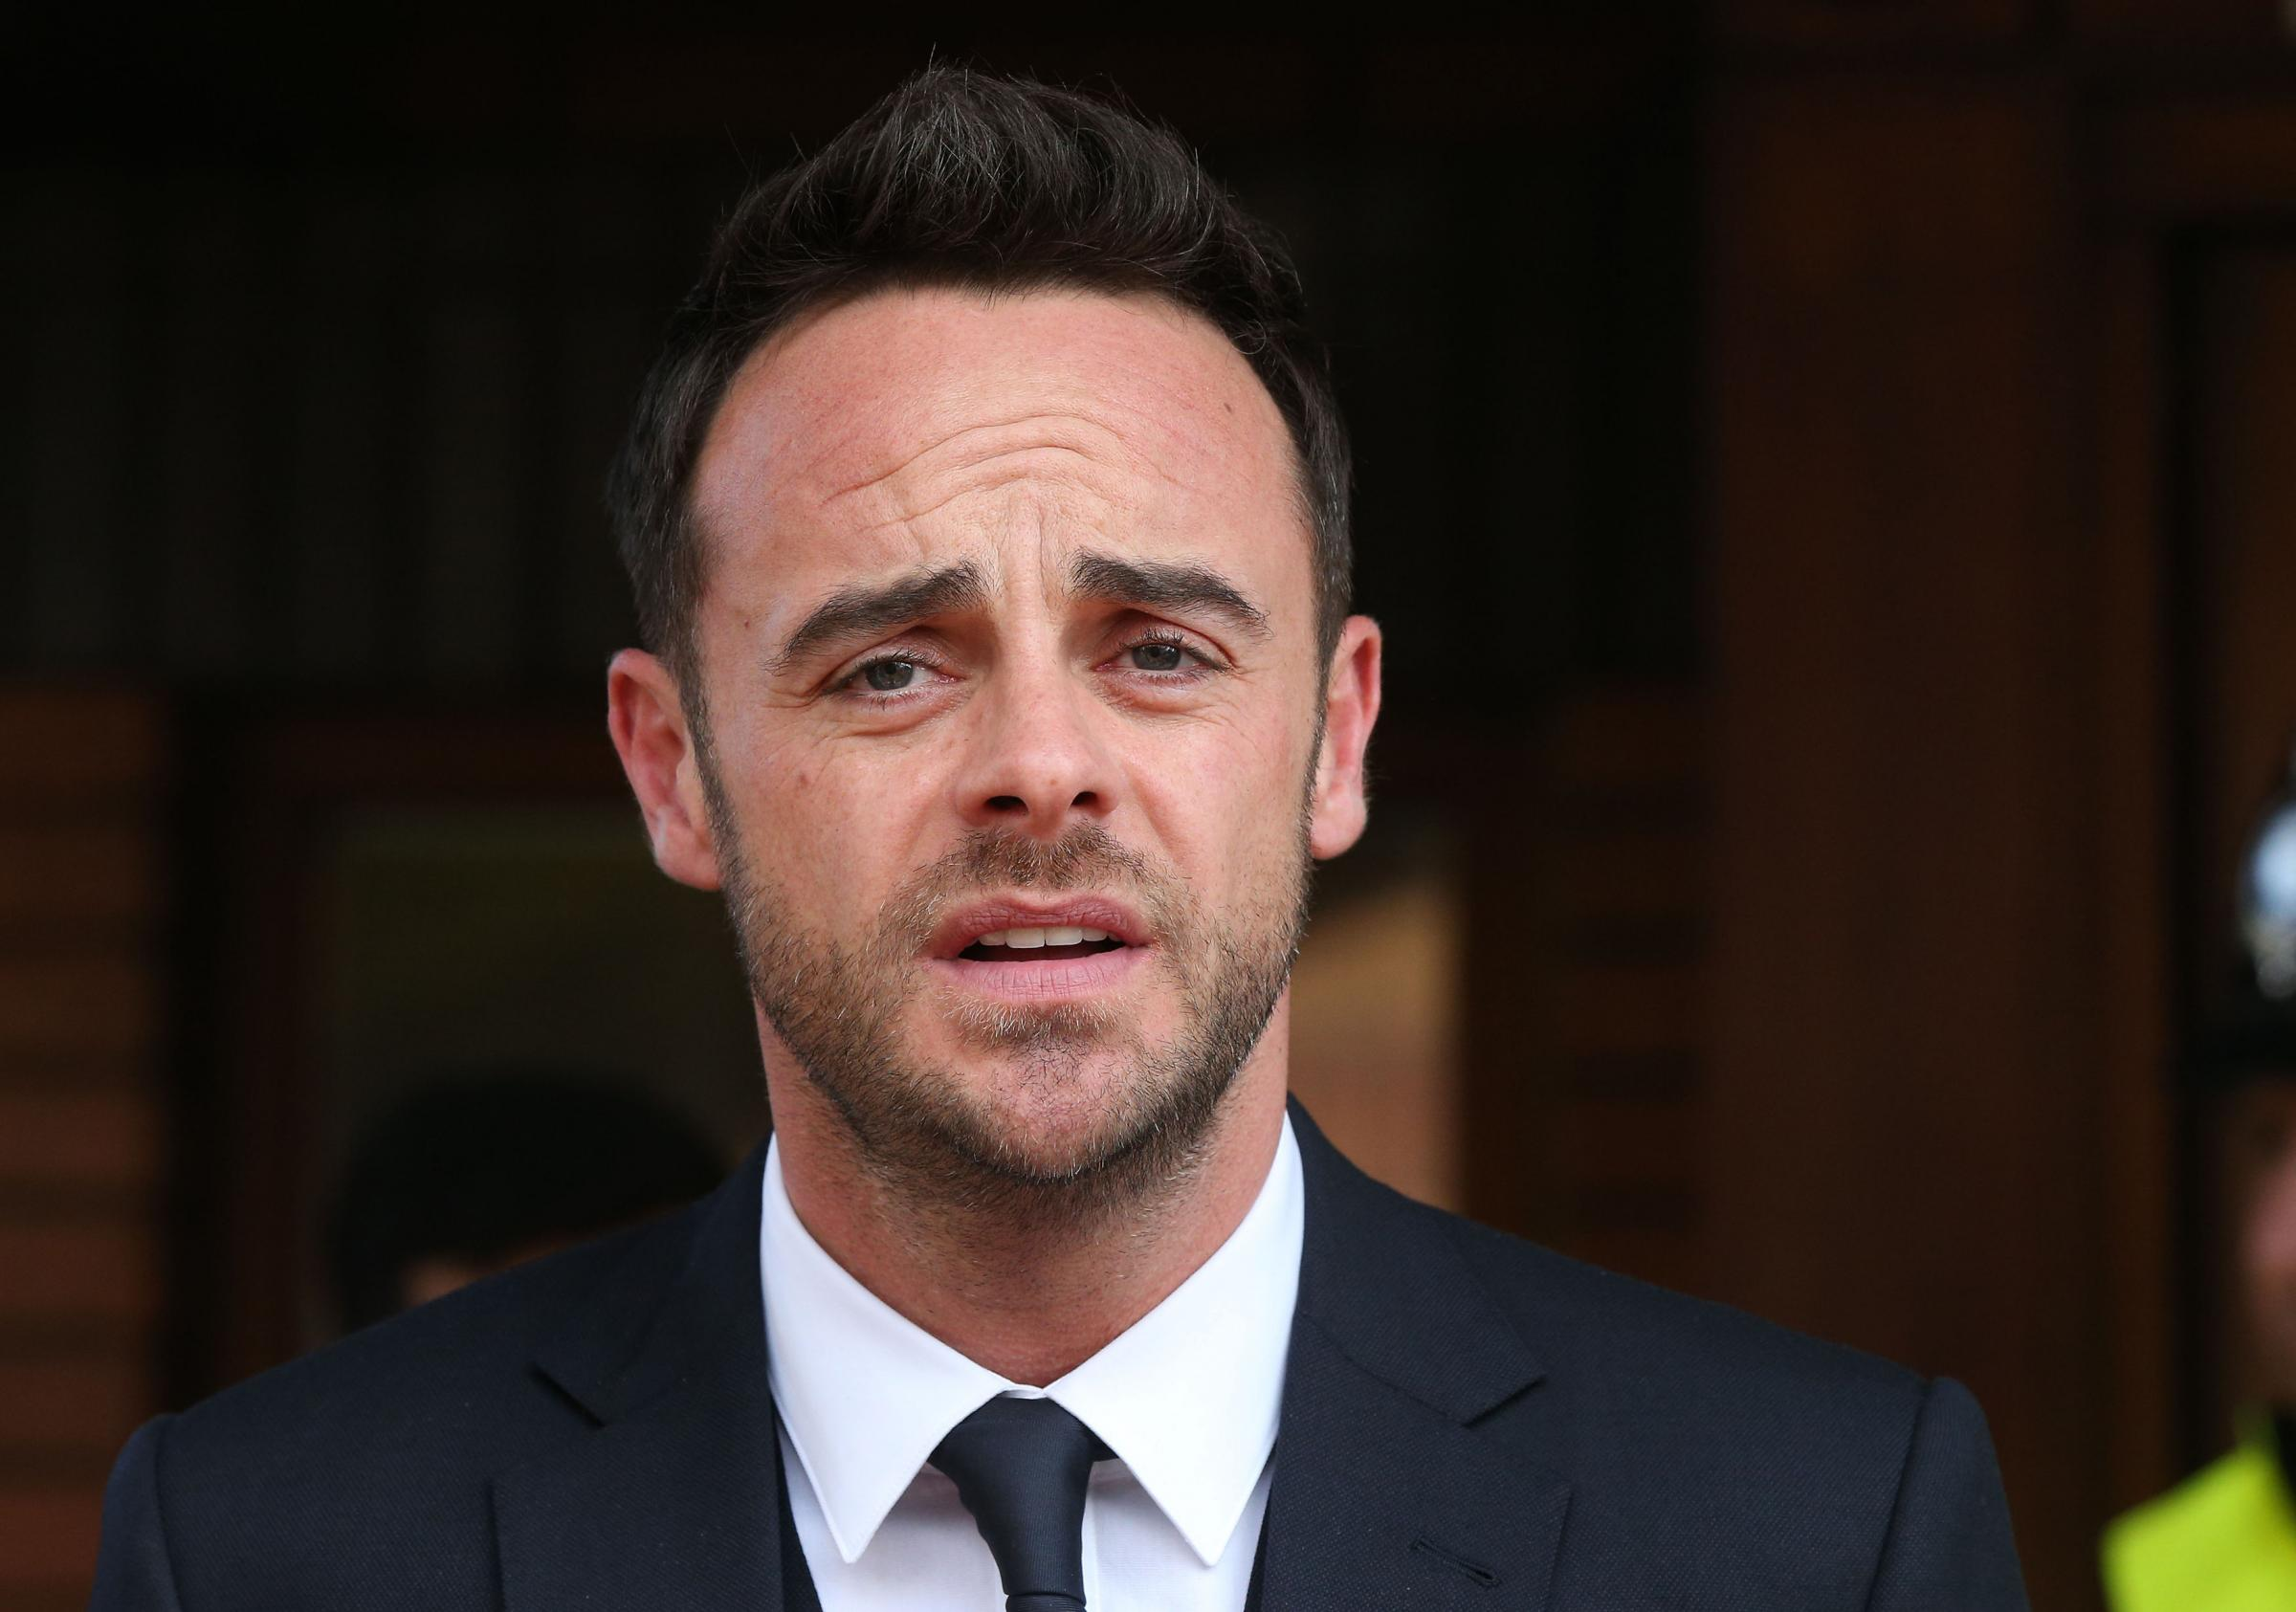 TV presenter Anthony McPartlin outside The Court House in Wimbledon, London, after being fined £86,000. Picture: PA